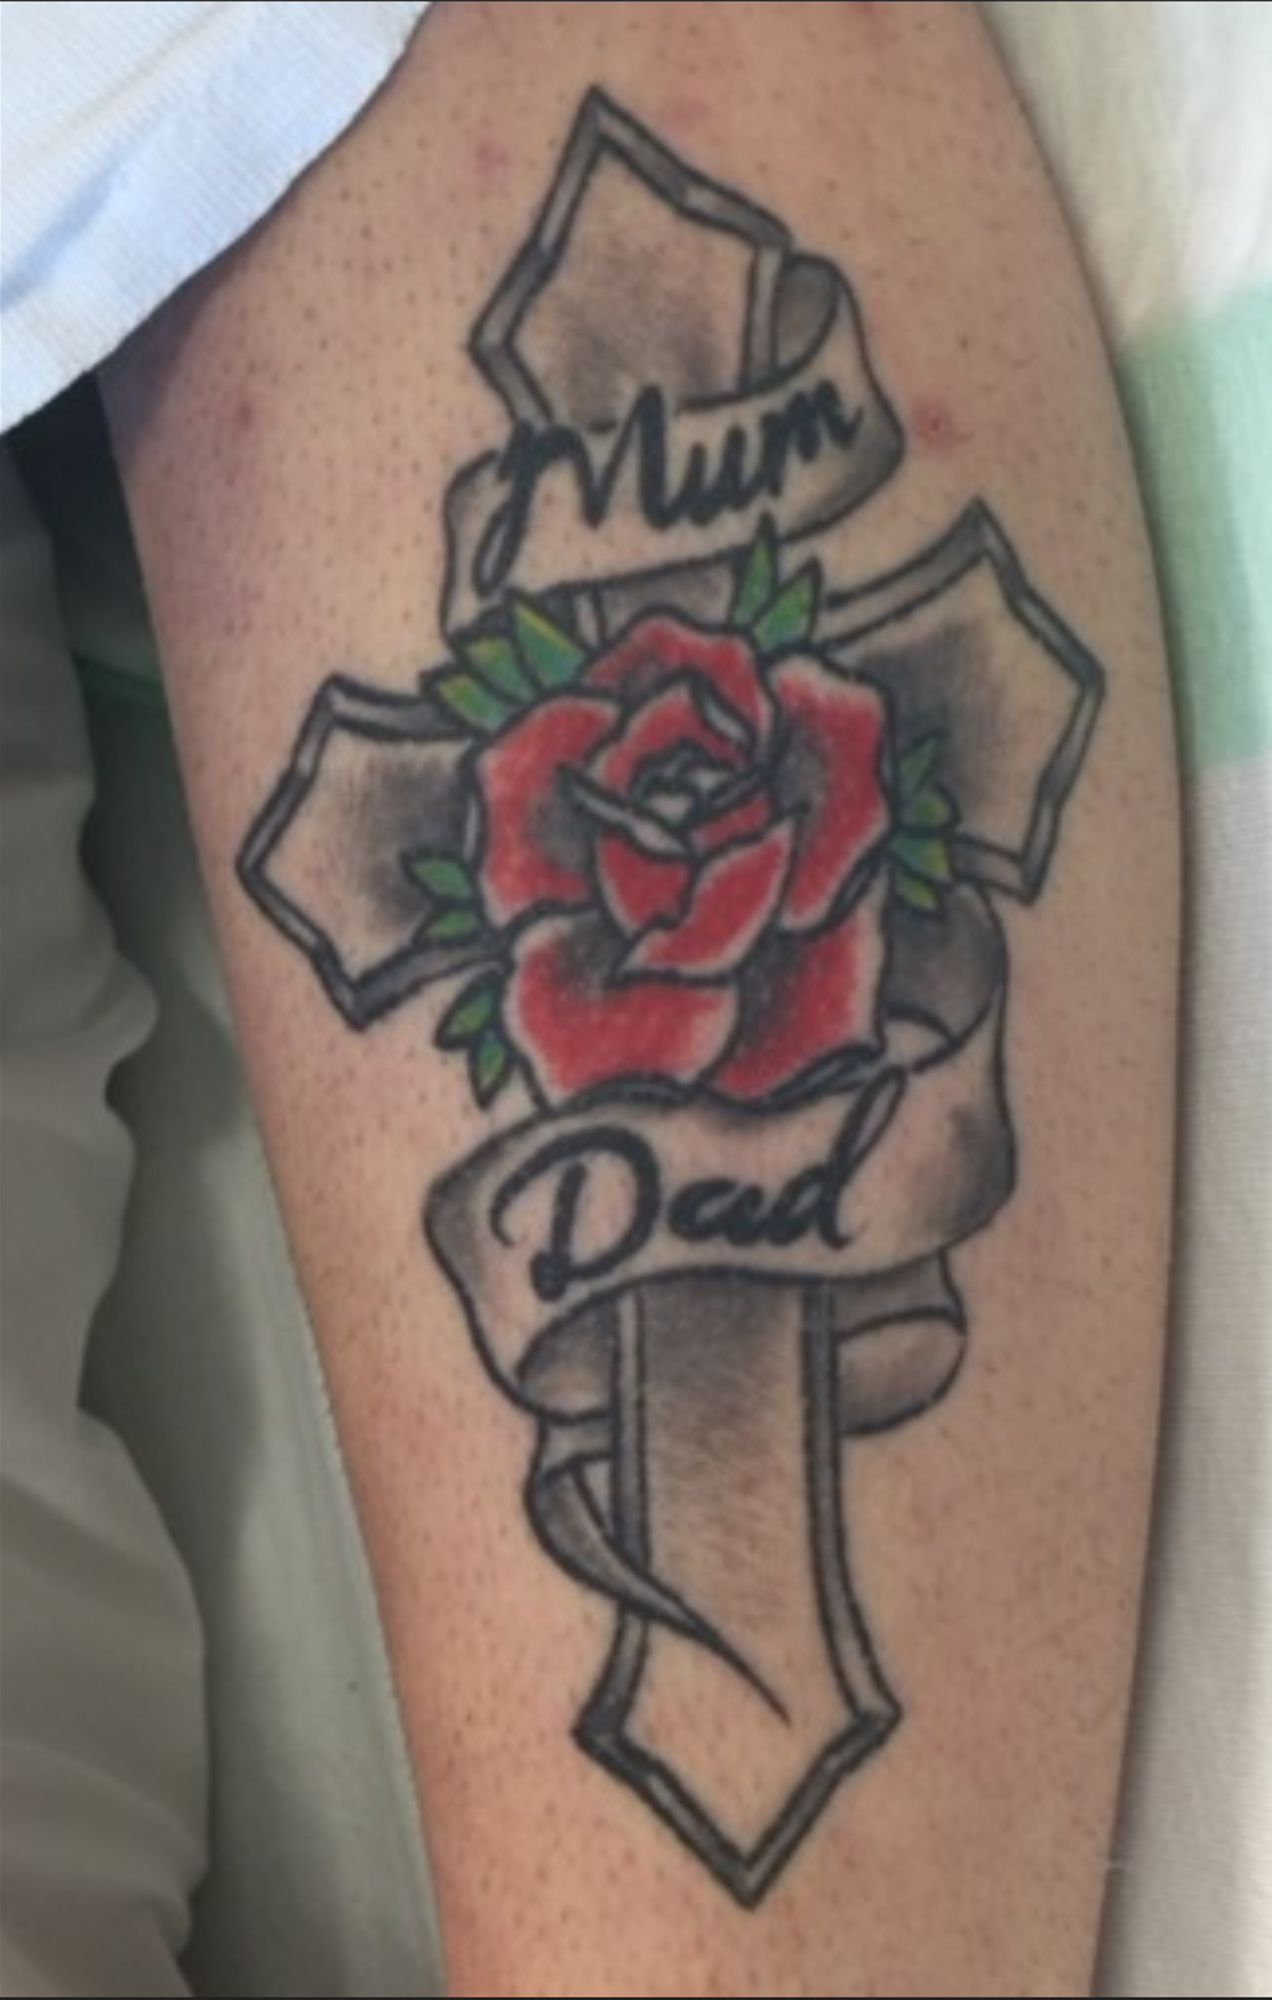 The woman has a tattoo of a cross with a rose, and has the words 'mum' and 'dad'. Photo / Supplied